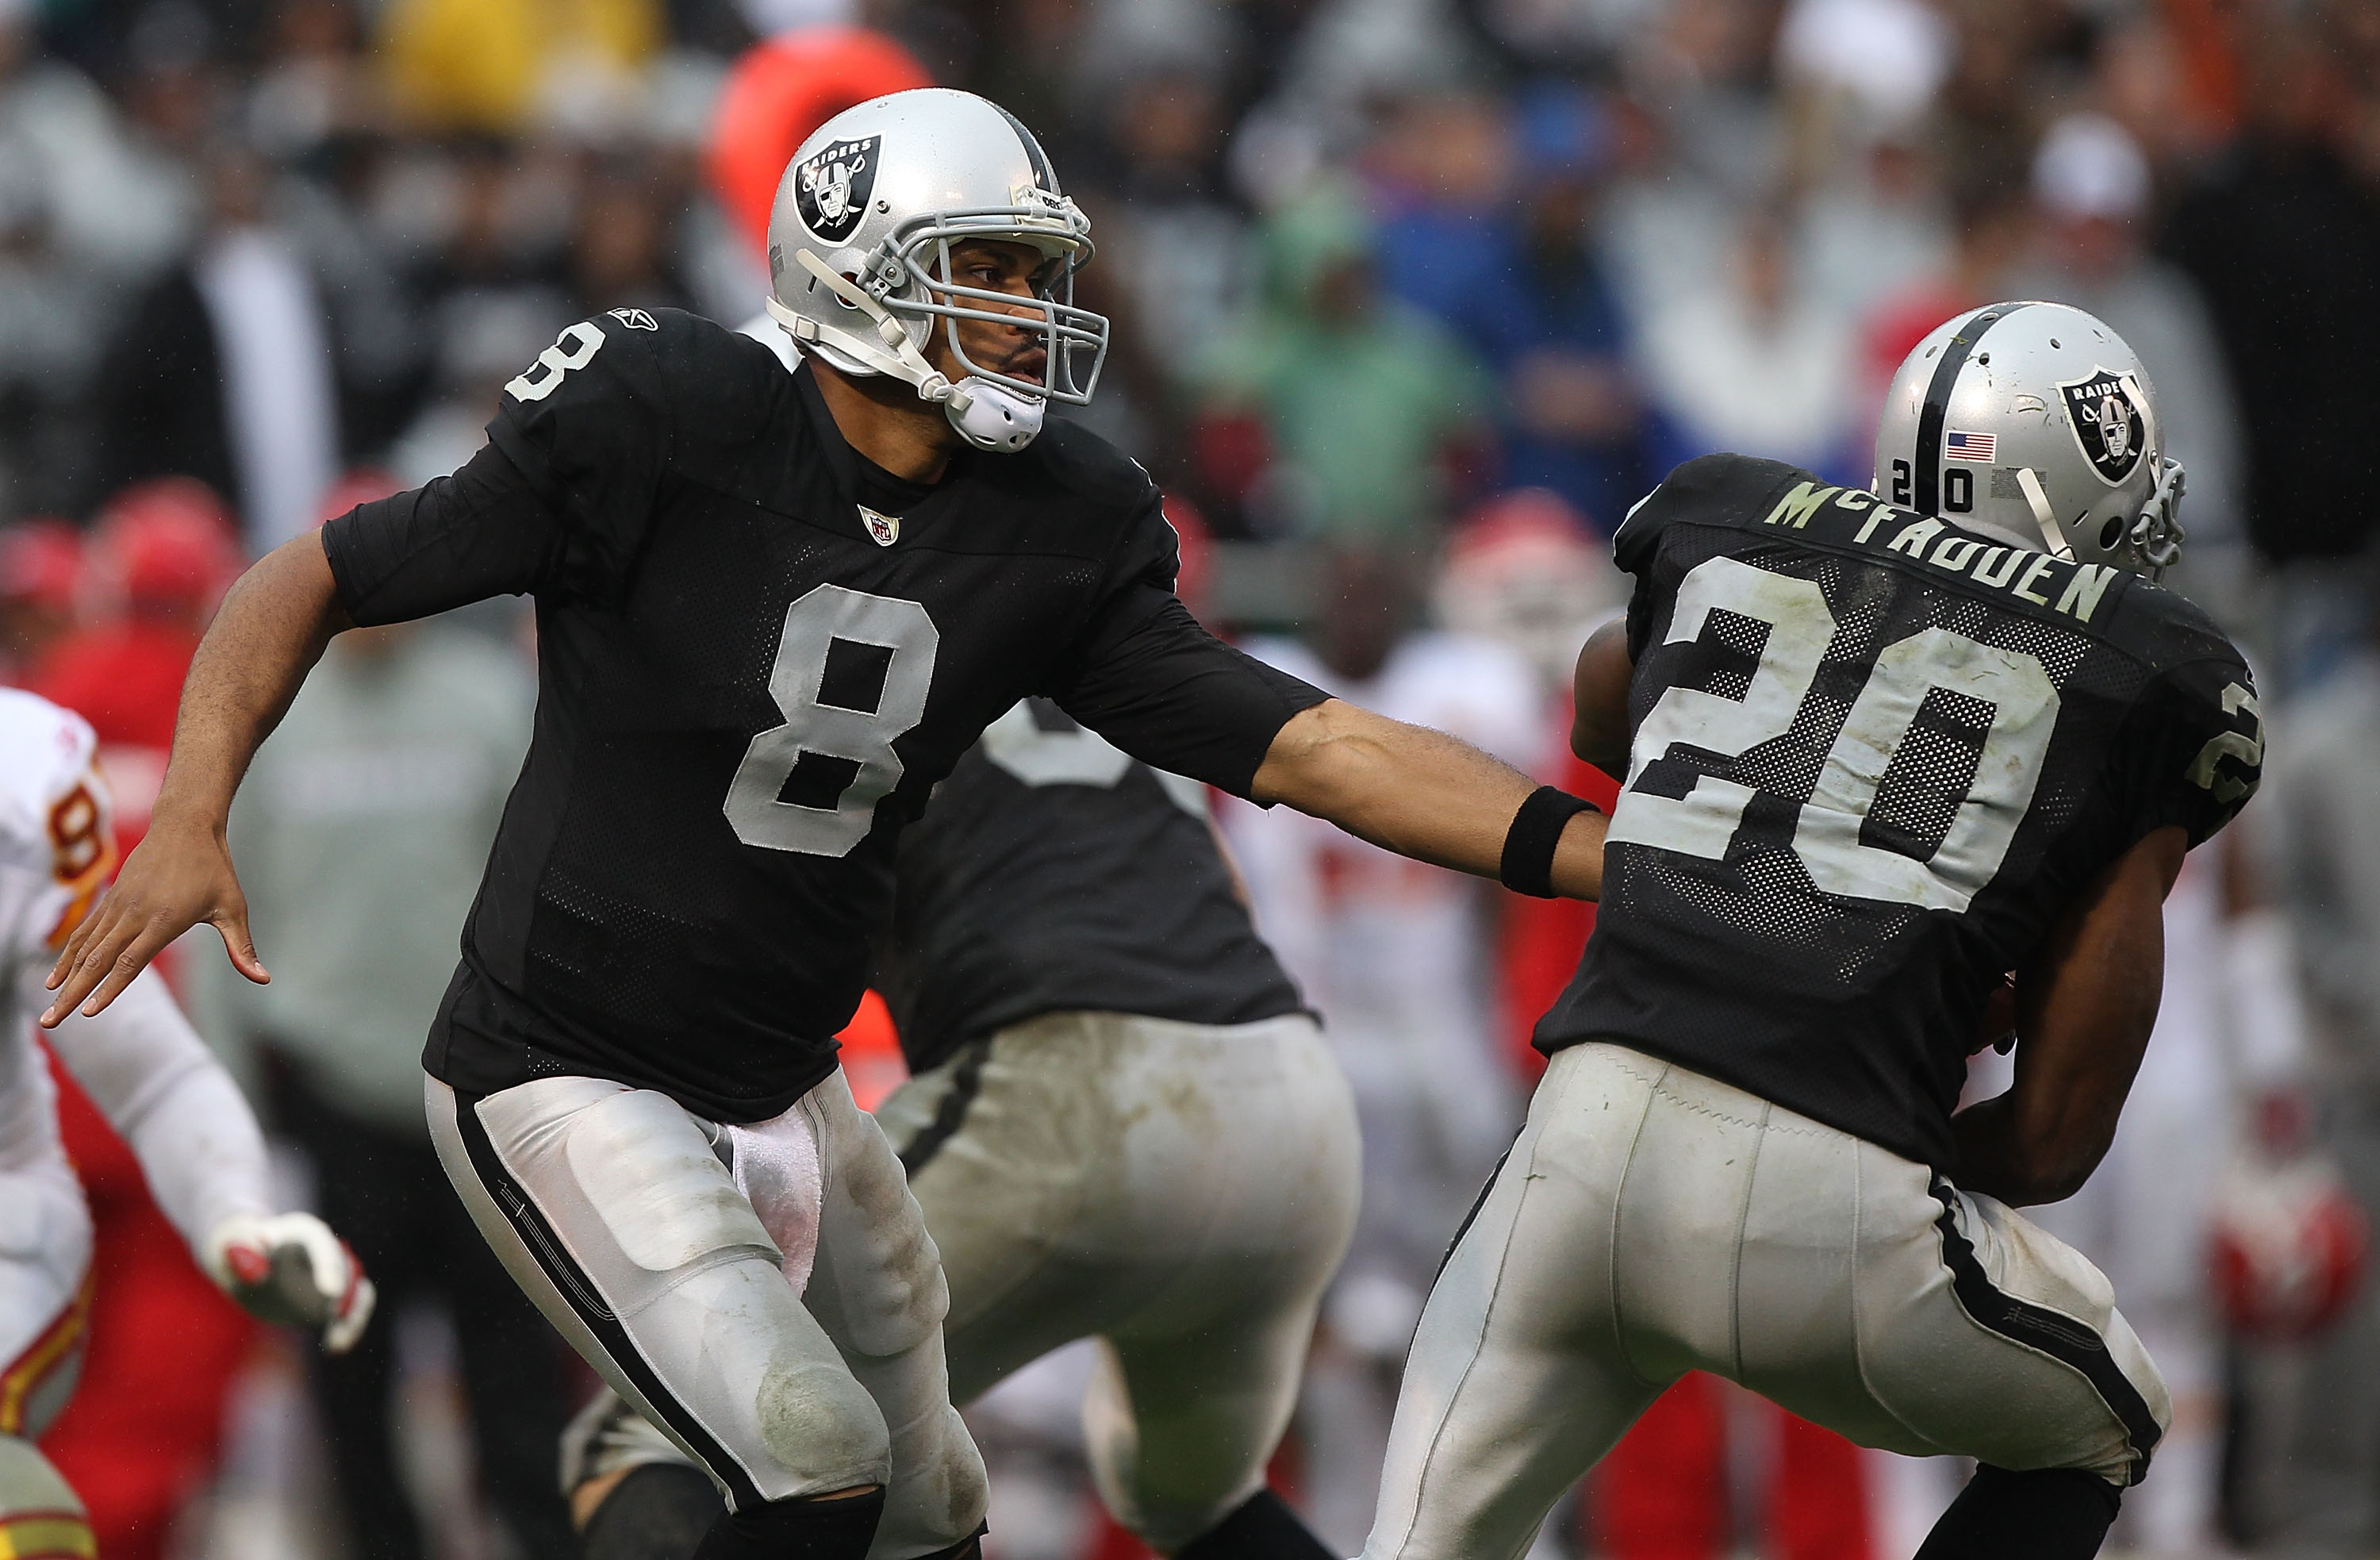 OAKLAND, CA - NOVEMBER 07:  Jason Campbell #8 hands the ball off to Darren McFadden #20 of the Oakland Raiders against the Kansas City Chiefs during an NFL game at Oakland-Alameda County Coliseum on November 7, 2010 in Oakland, California.  (Photo by Jed